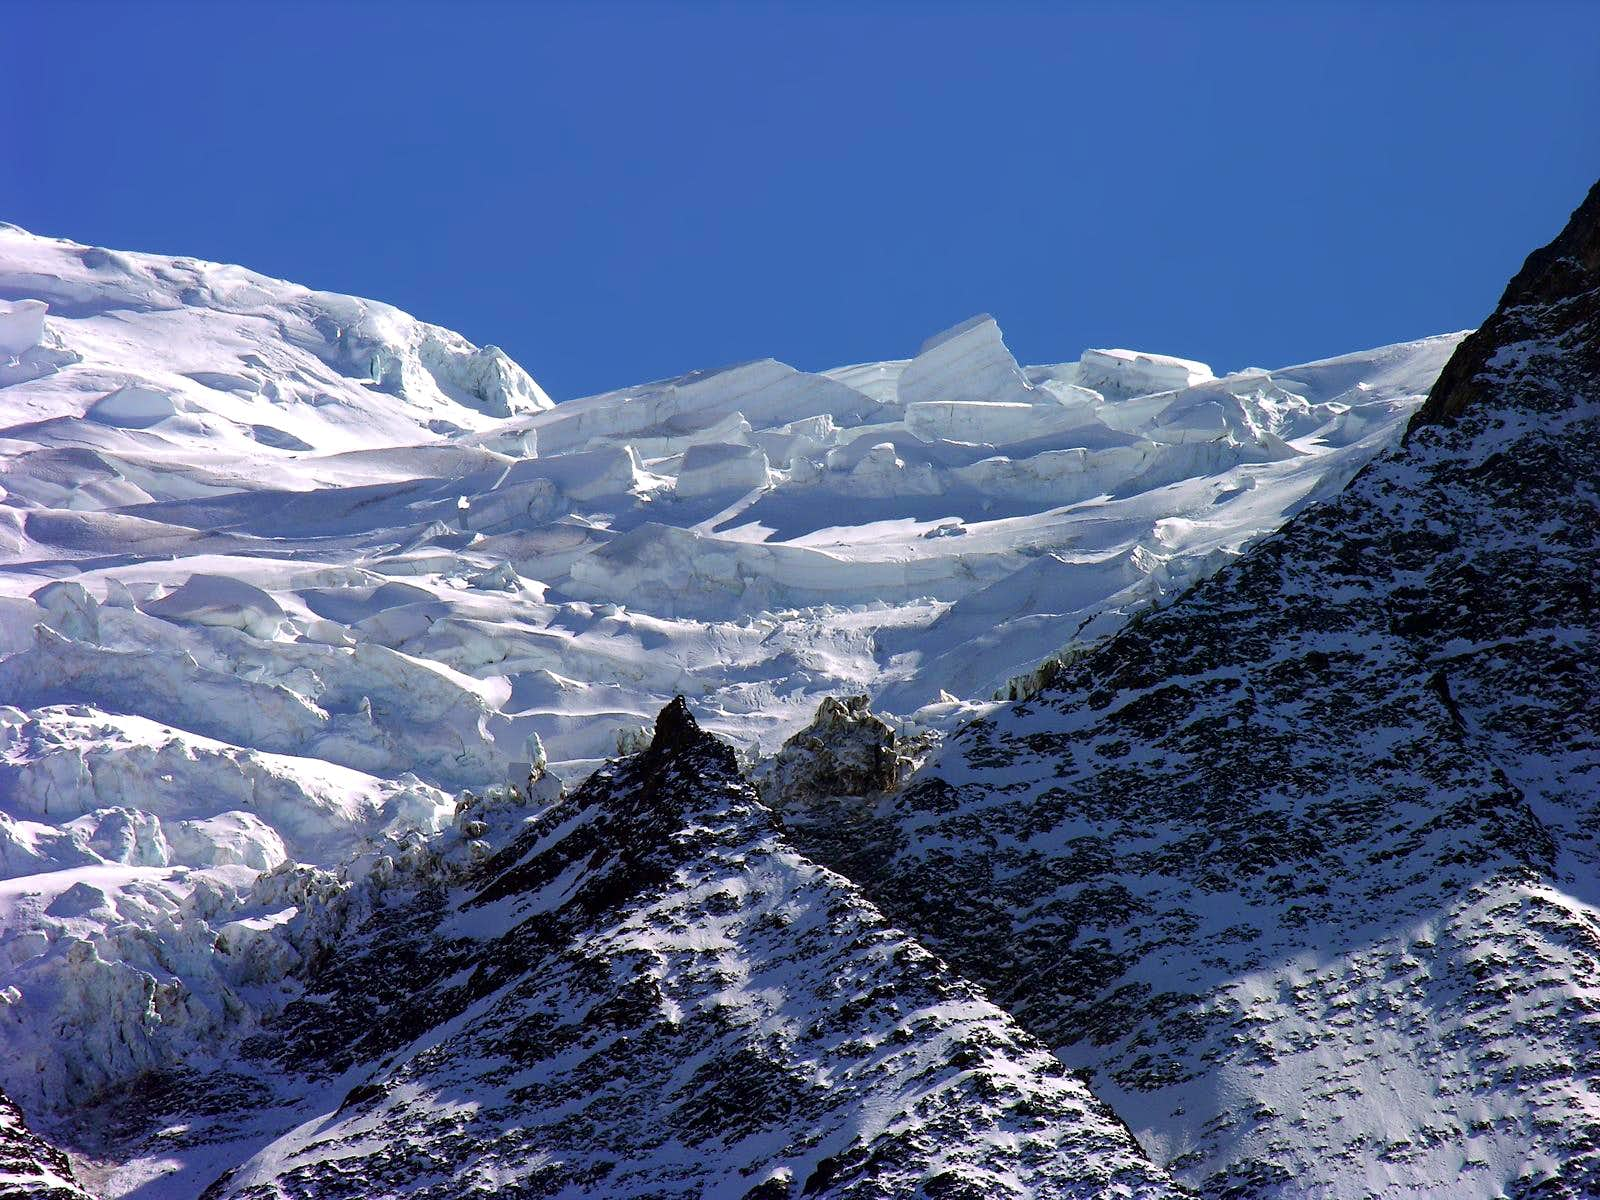 <font color=blue>▲</font>Glaciers of the Monte Bianco